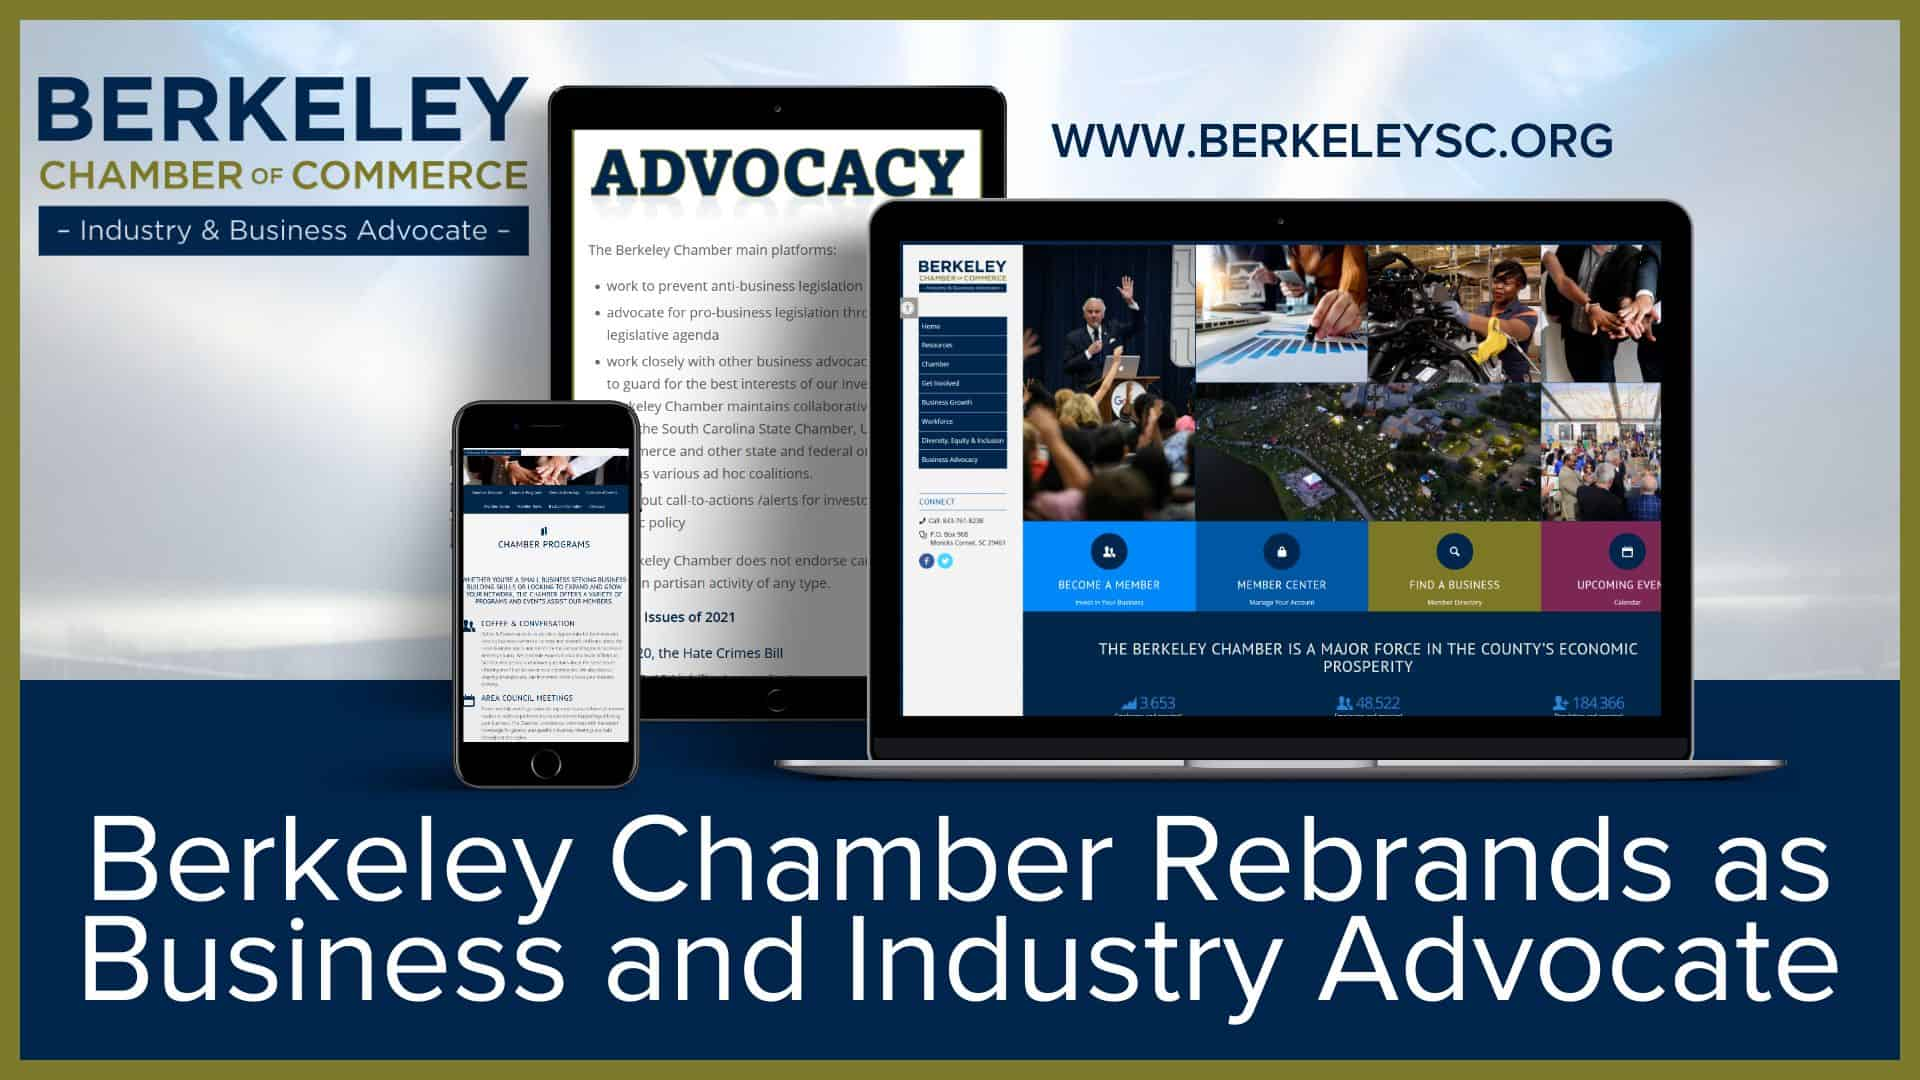 Berkeley Chamber rebrands as Business and Industry Advocate